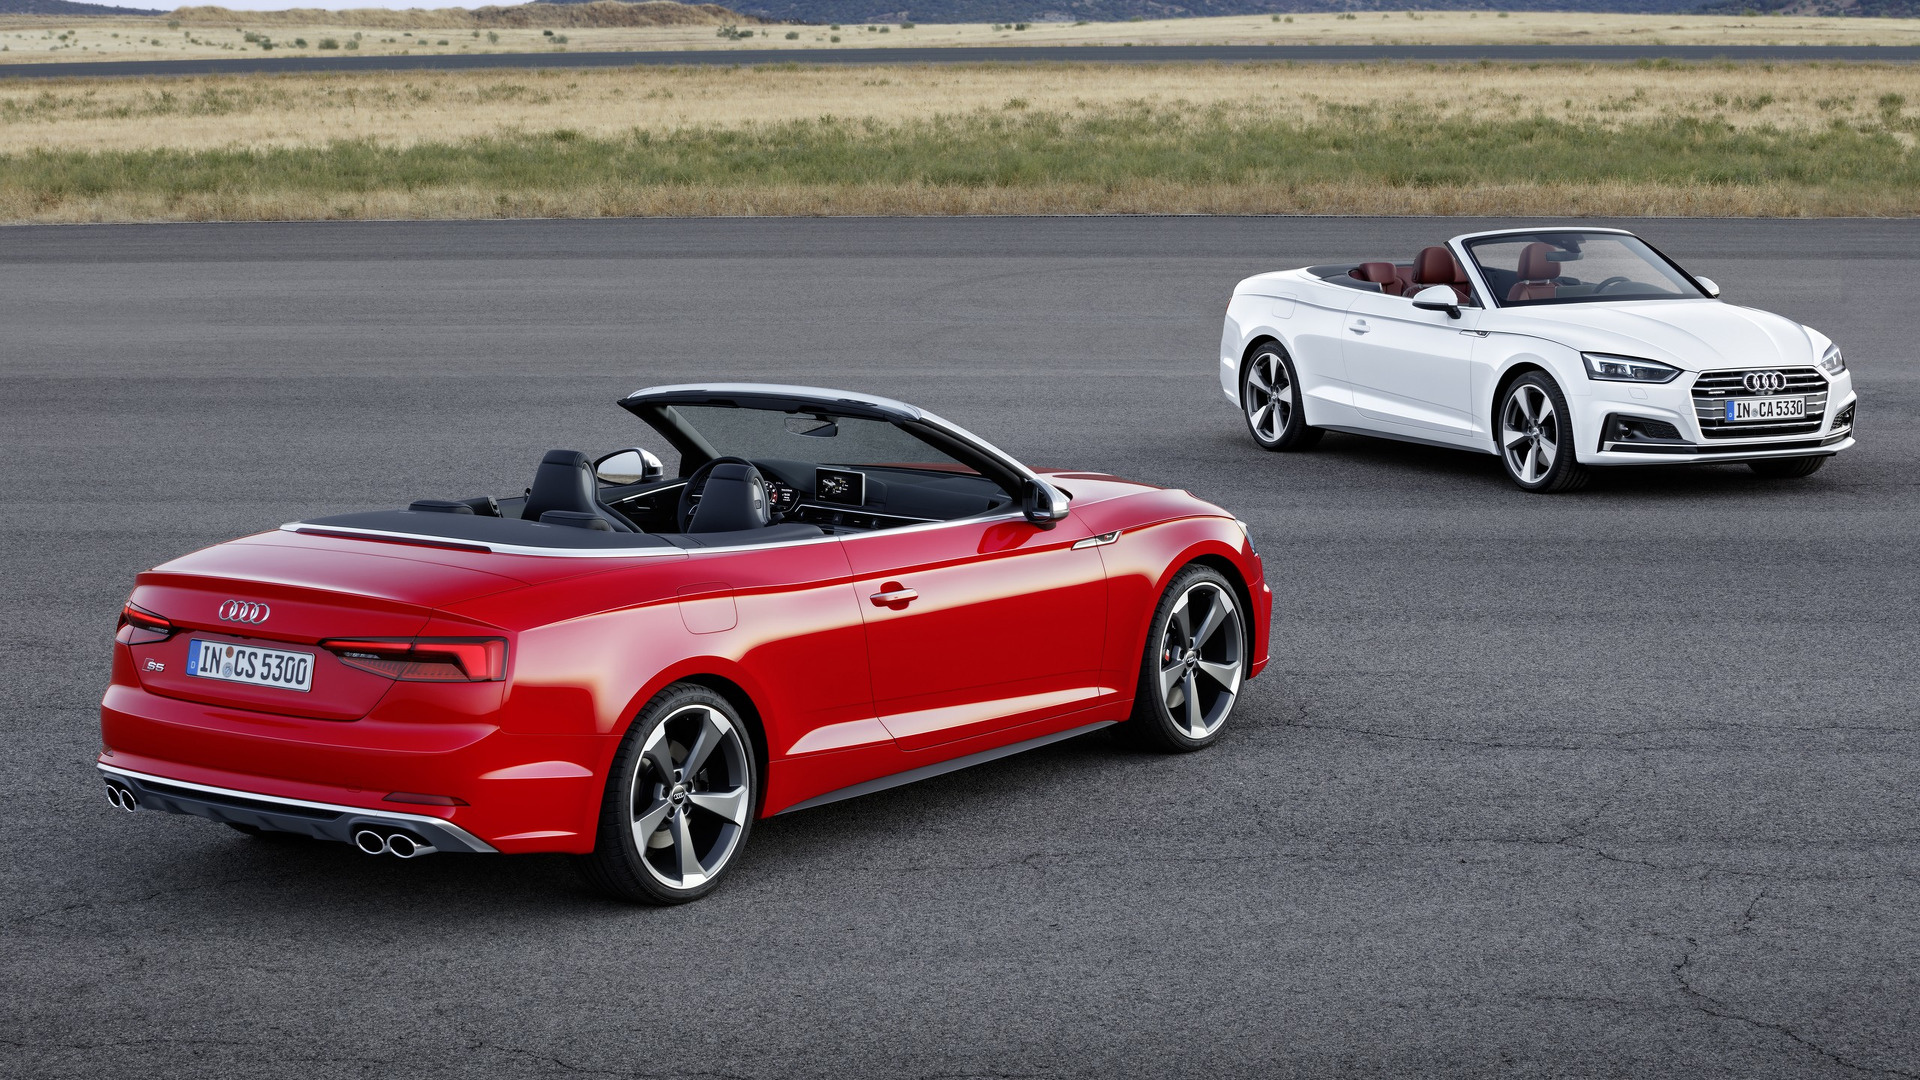 Audi Tt A5 Convertibles Could Be Replaced By A3 Based A4 Cabrio